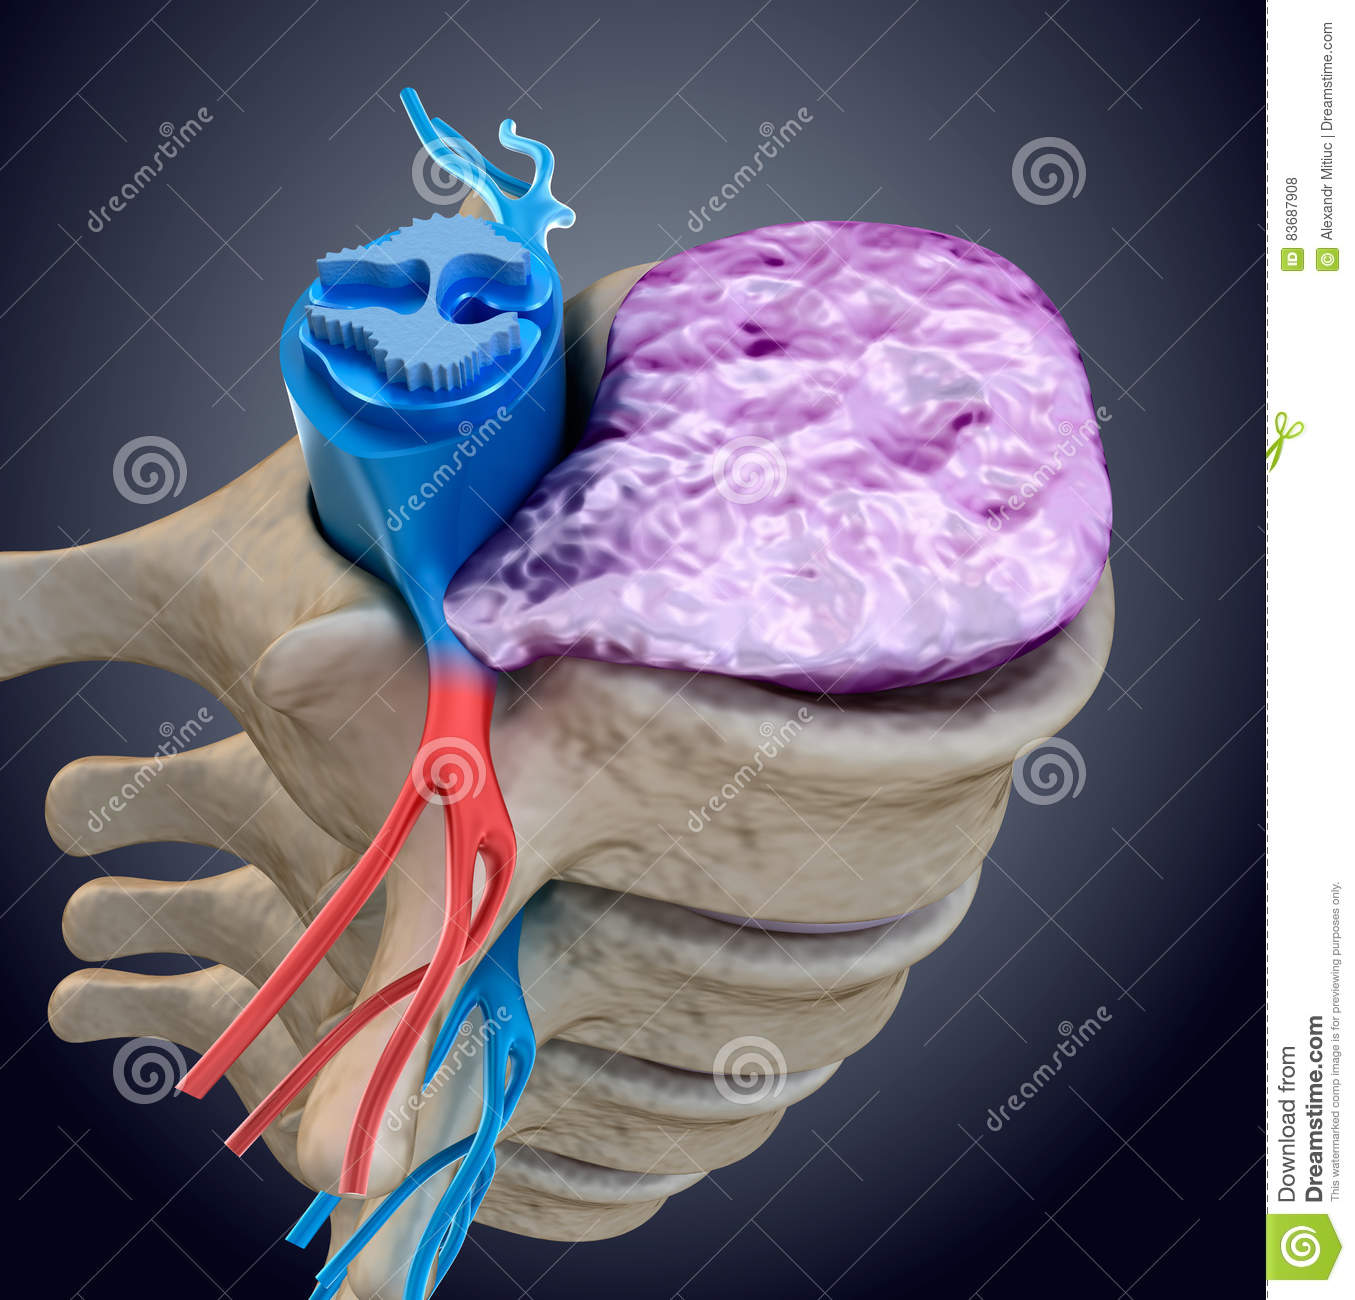 Spinal cord under pressure of bulging disc. Medically accurate illustration